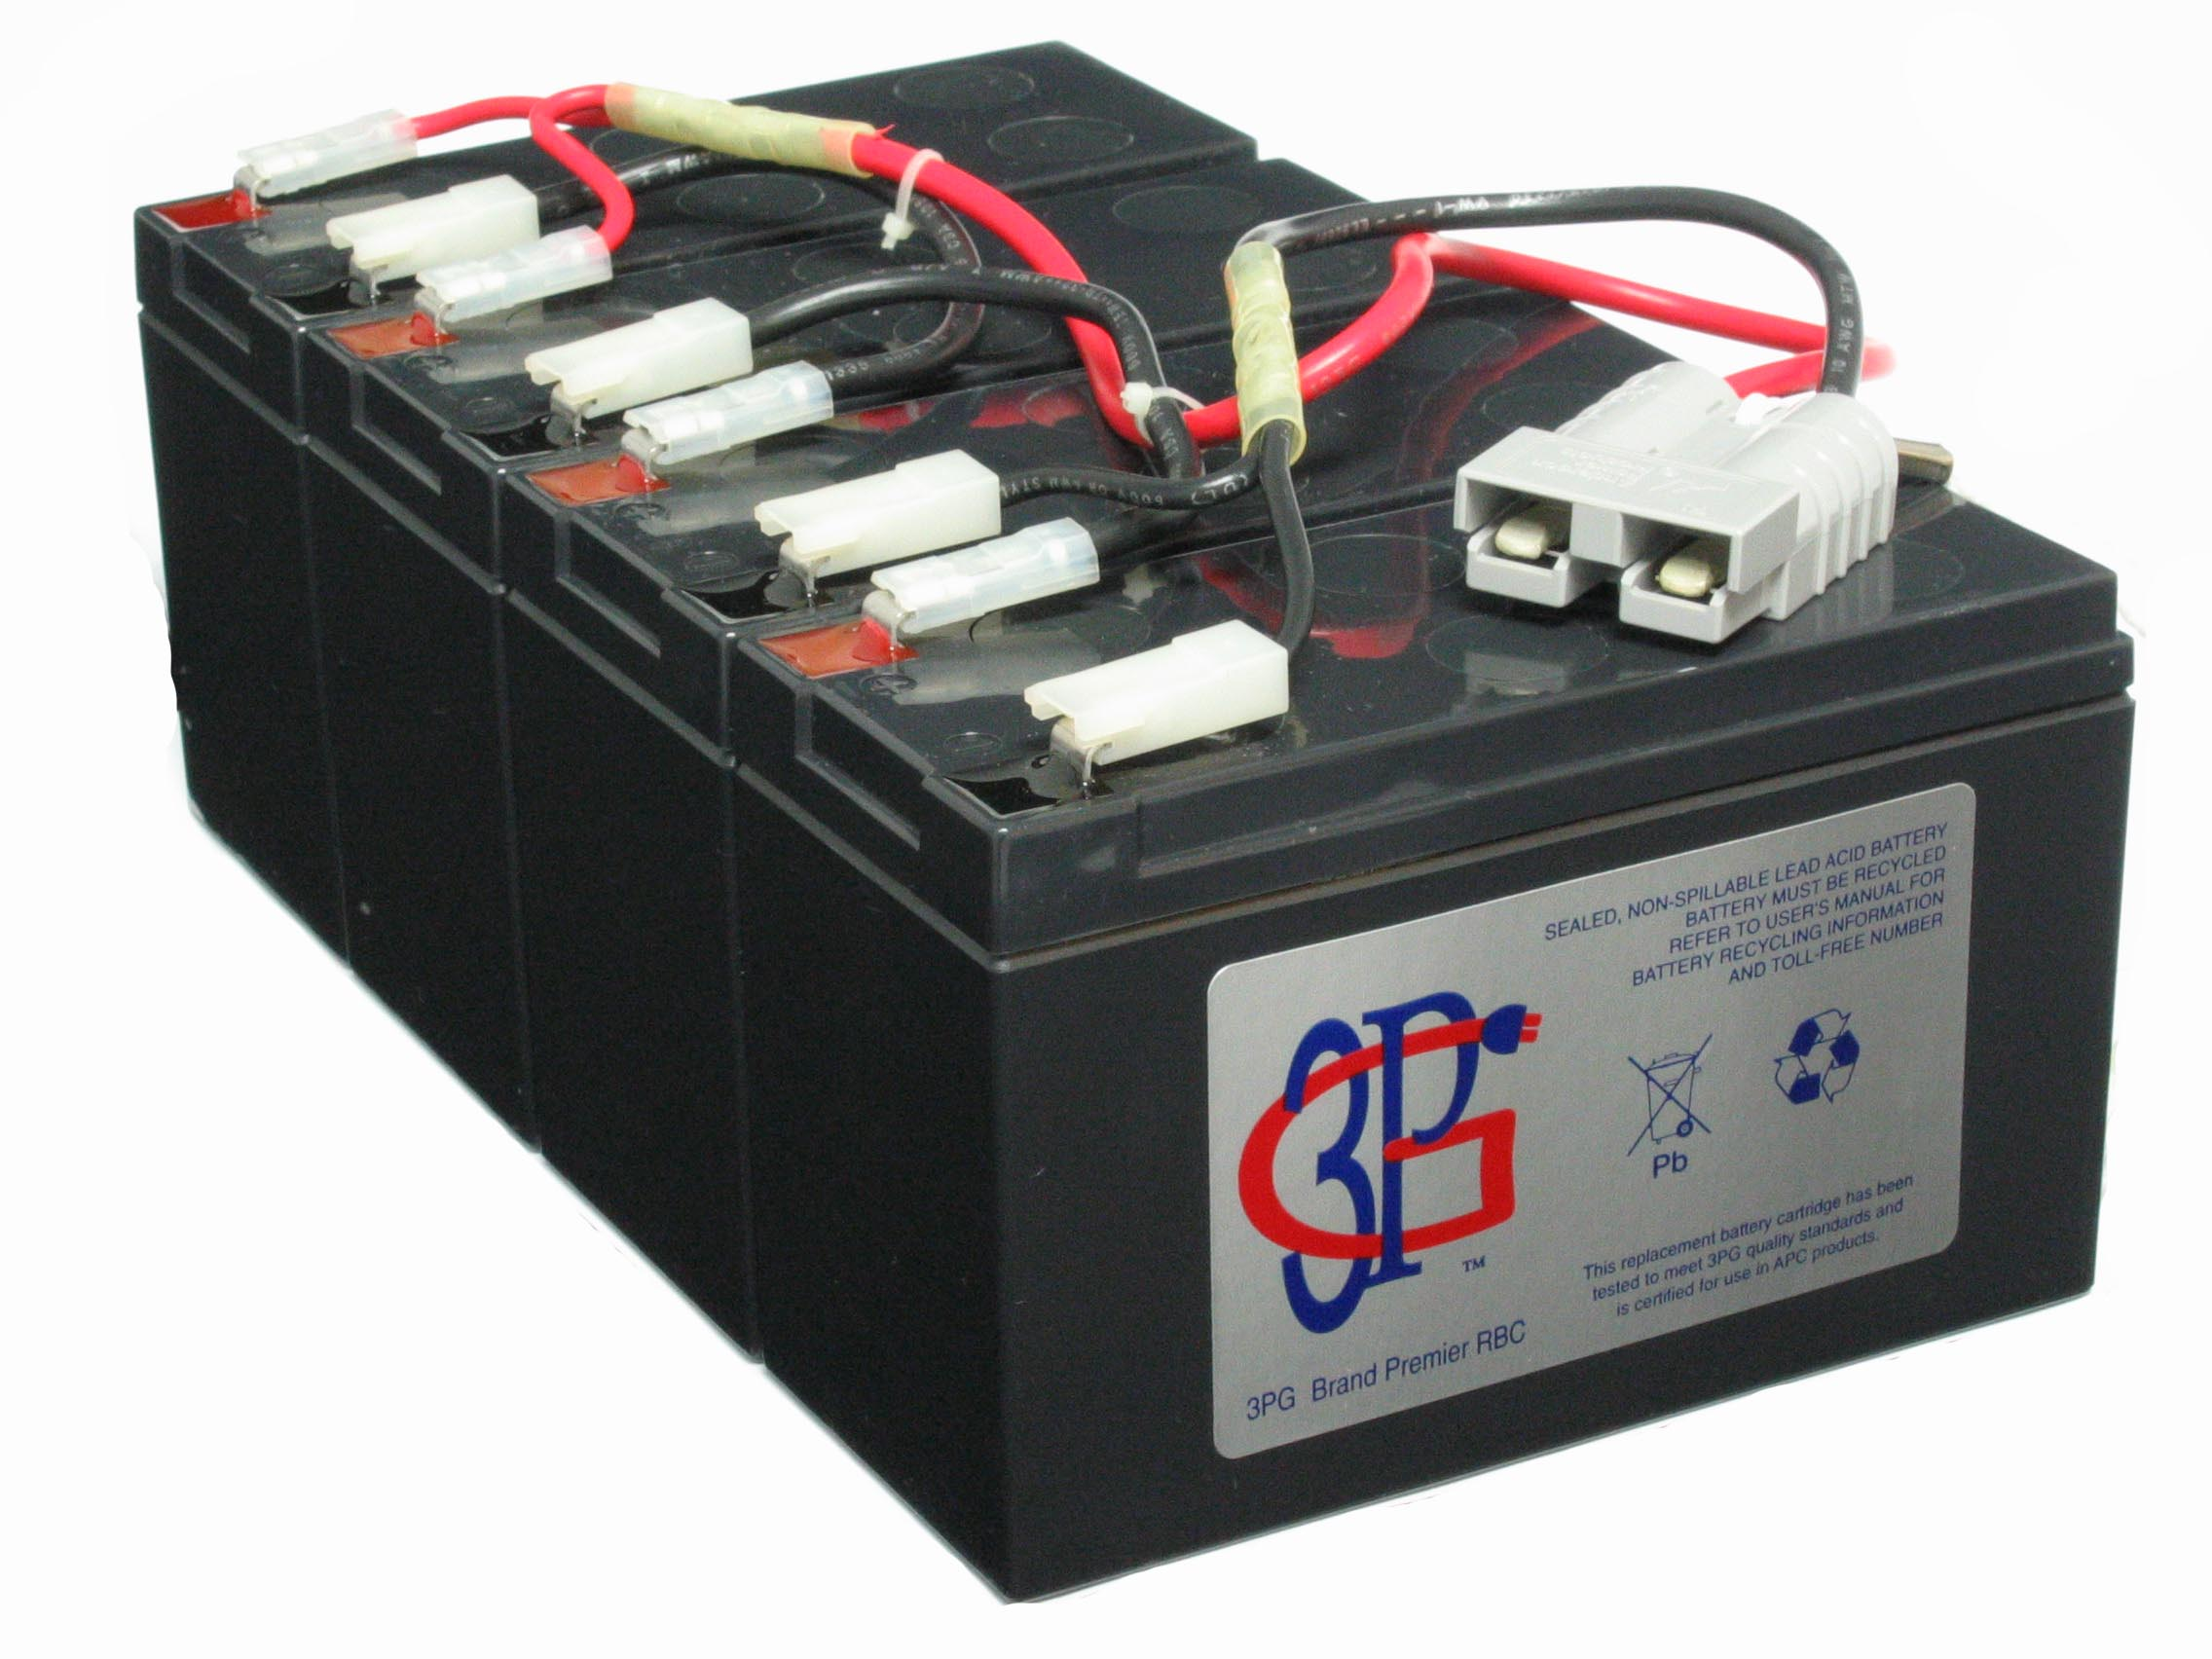 3PG RBC's - APC Replacement Batteries